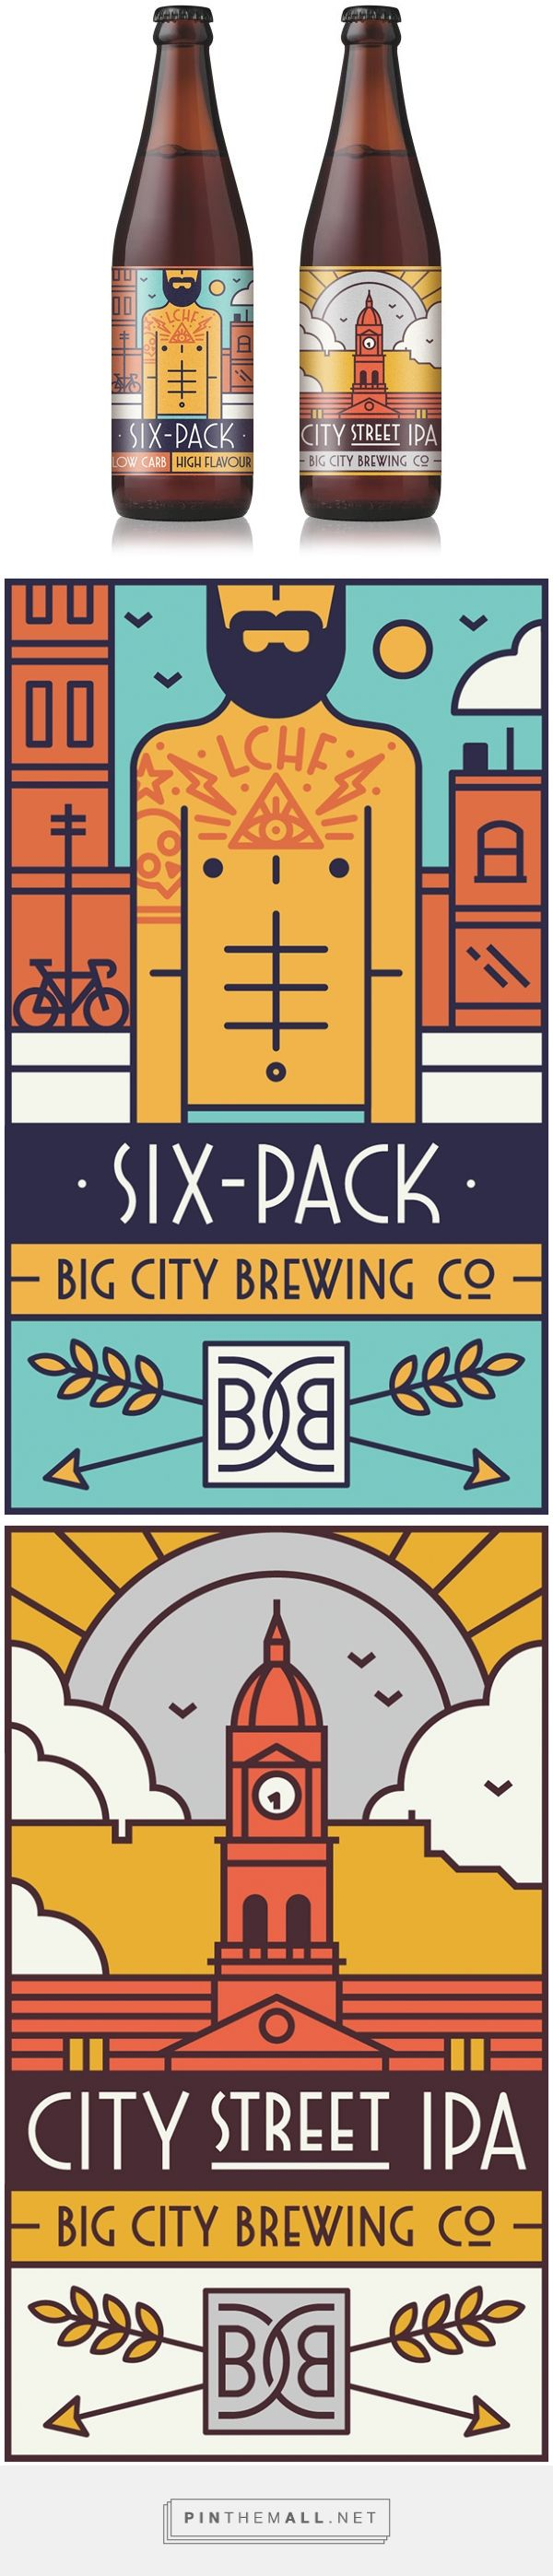 Big City Brewing Co. / MUTI